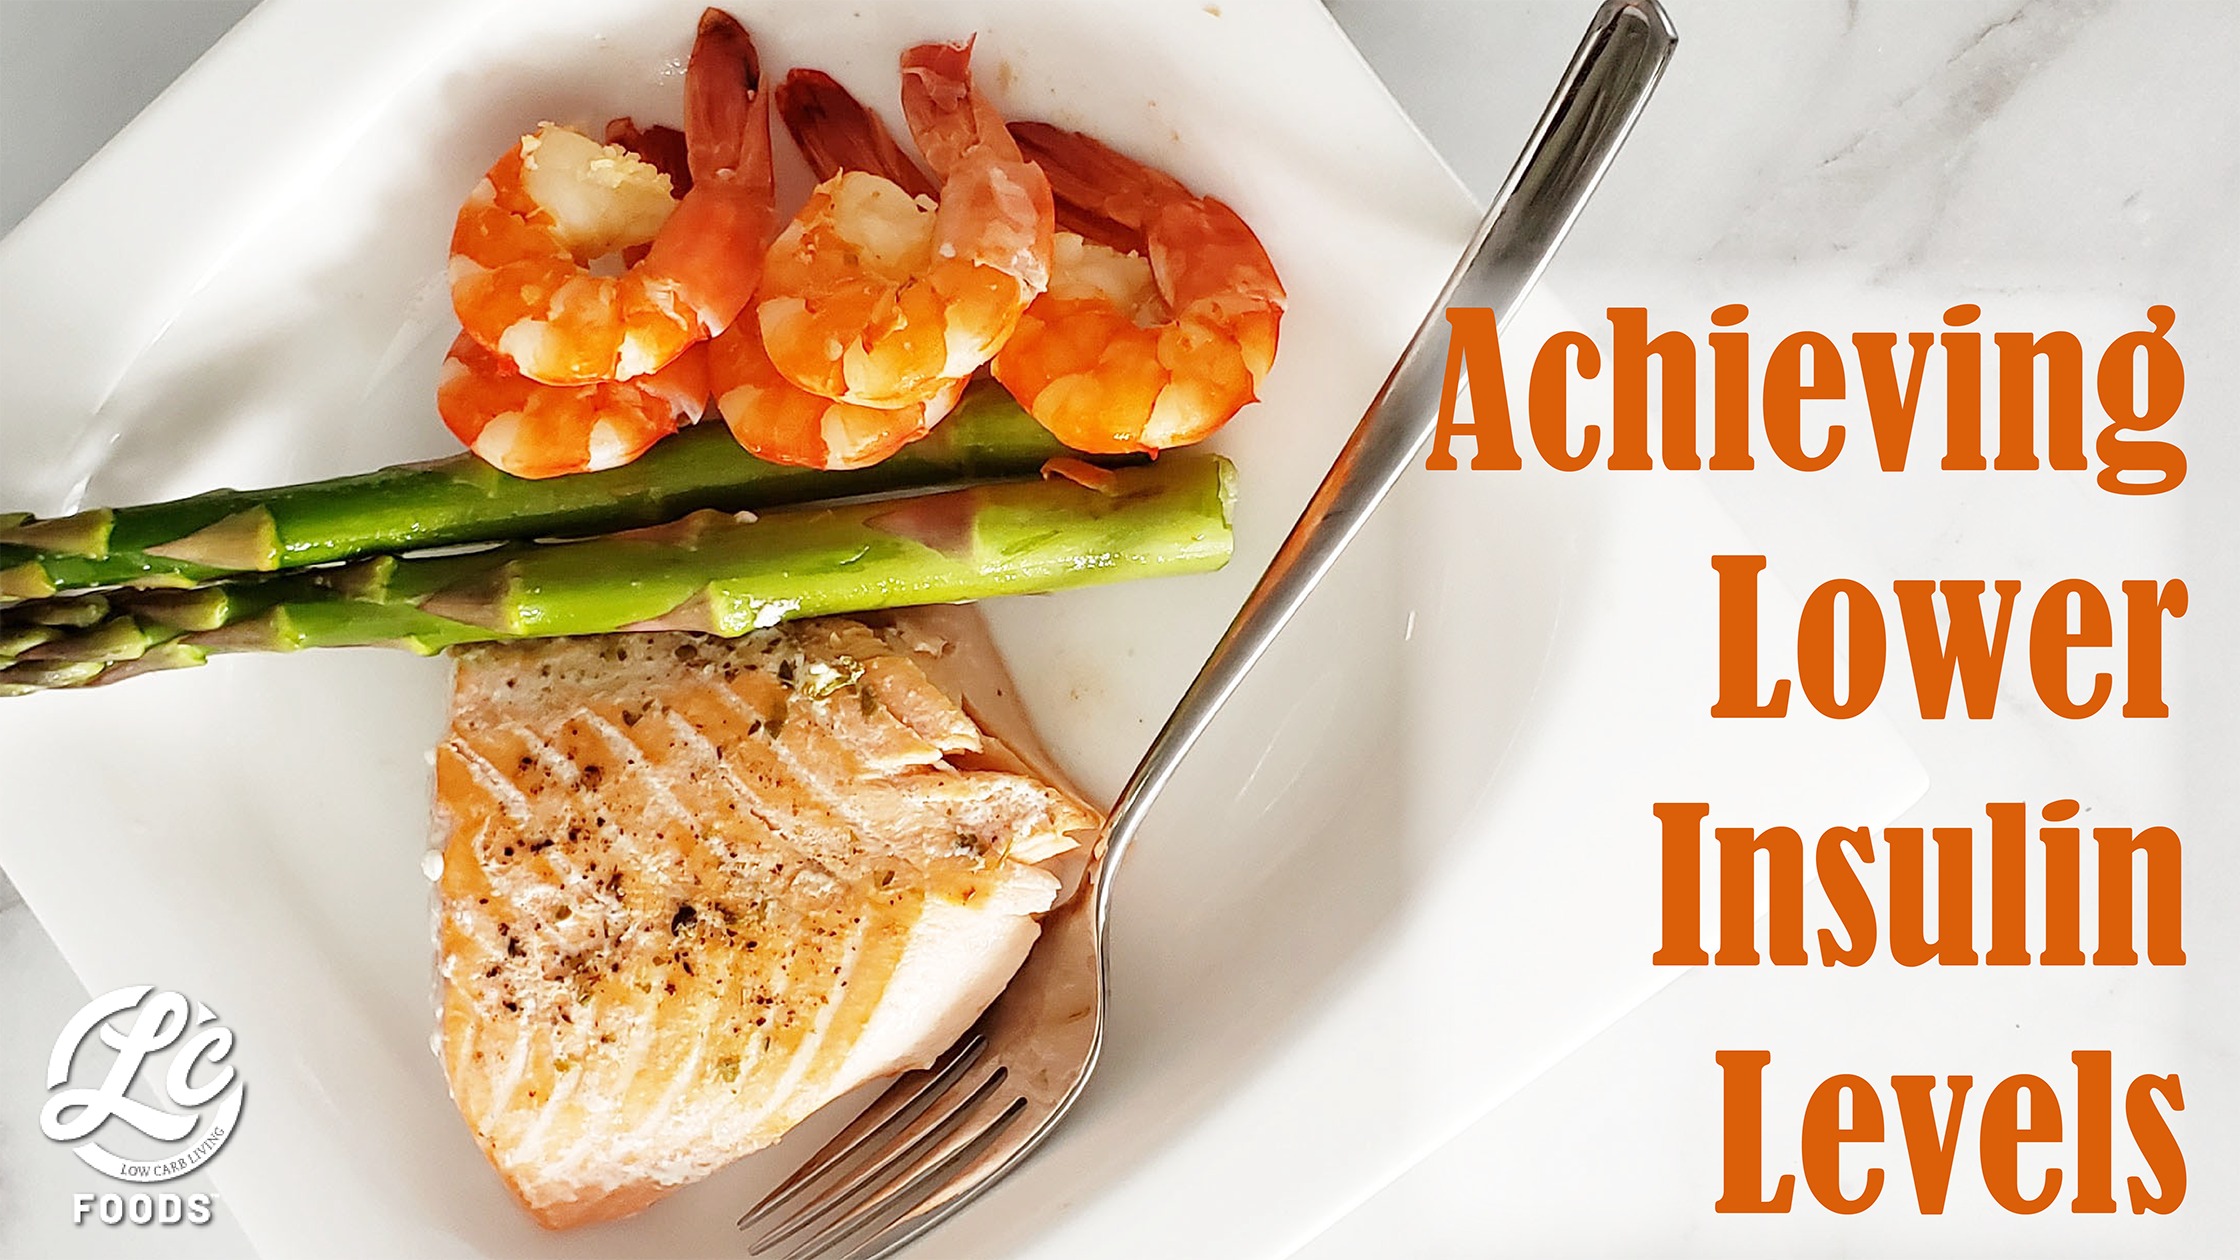 Thumbnail for Carb Restriction Lowers Insulin Levels